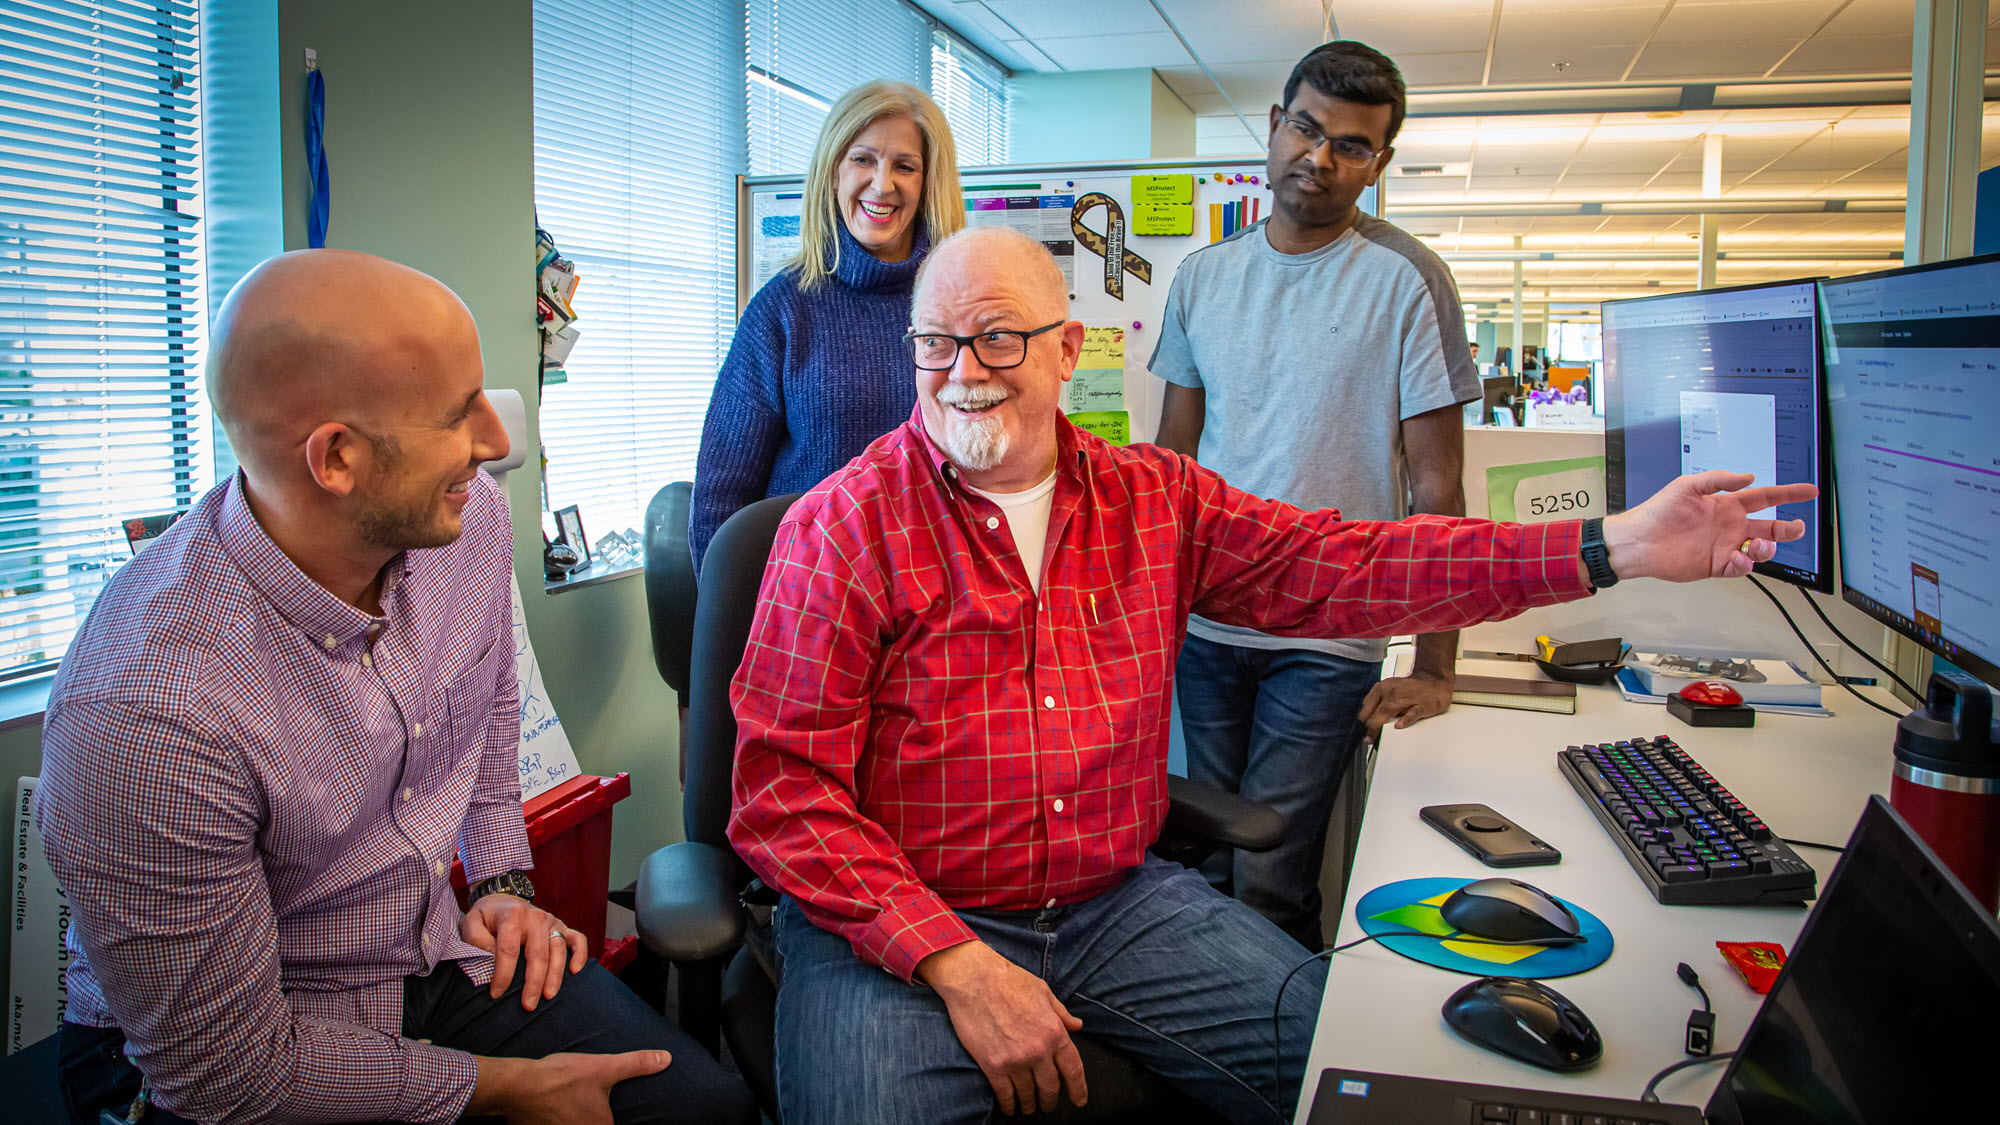 Four Microsoft employees on the Network Automation Delivery Team talk and laugh as Steve Kern gestures to his monitor.